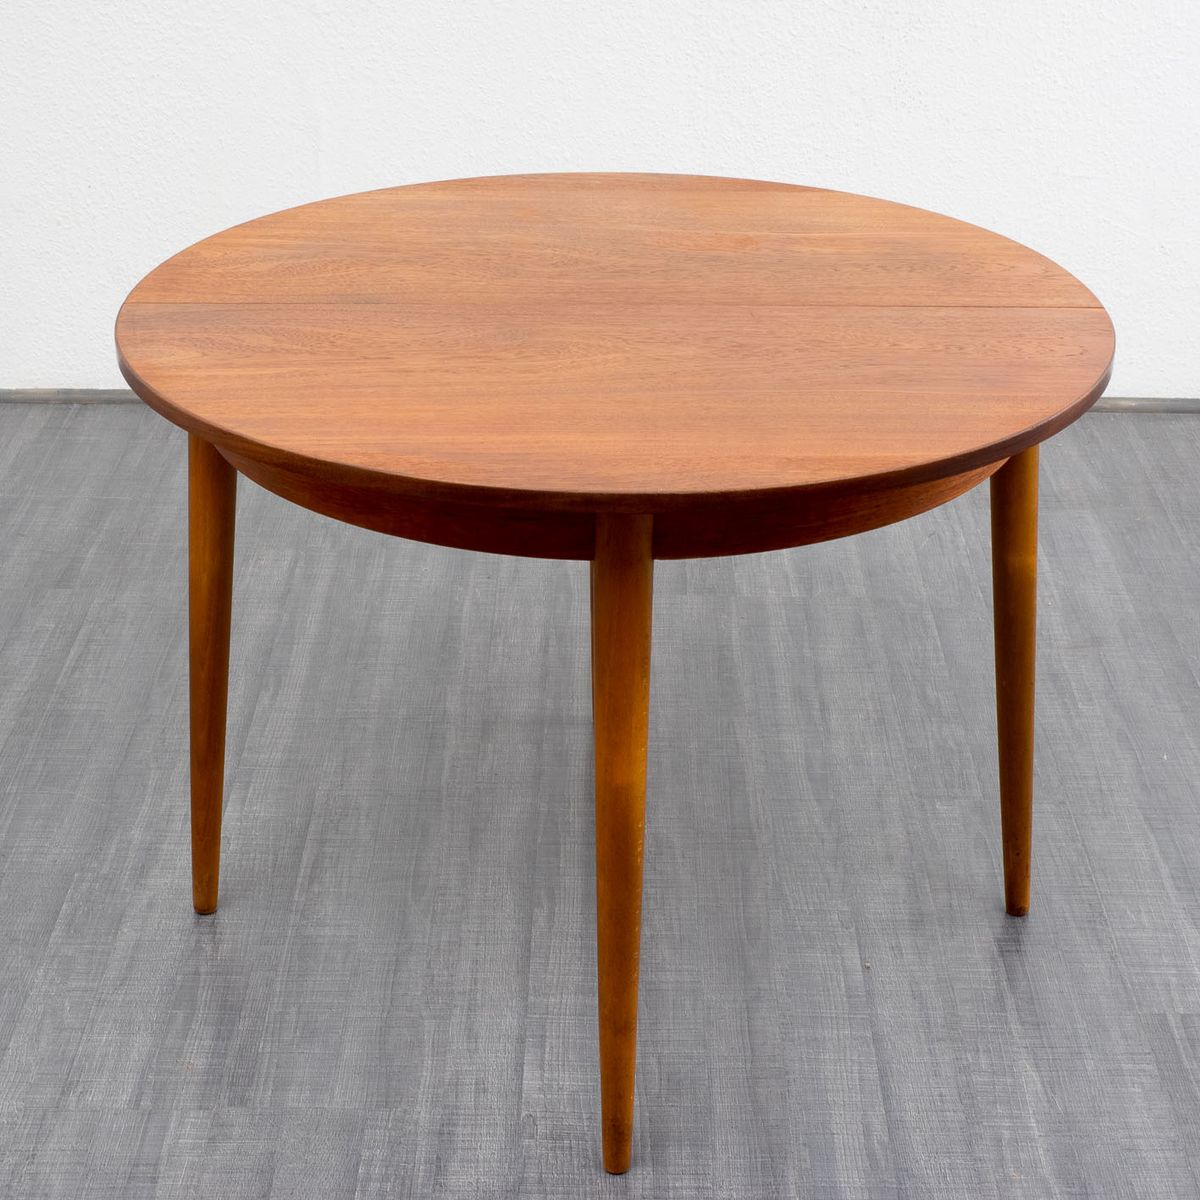 1960s Legs Bing images : vintage round teak dining table 1960s 7 from www.bingapis.com size 1200 x 1200 jpeg 136kB